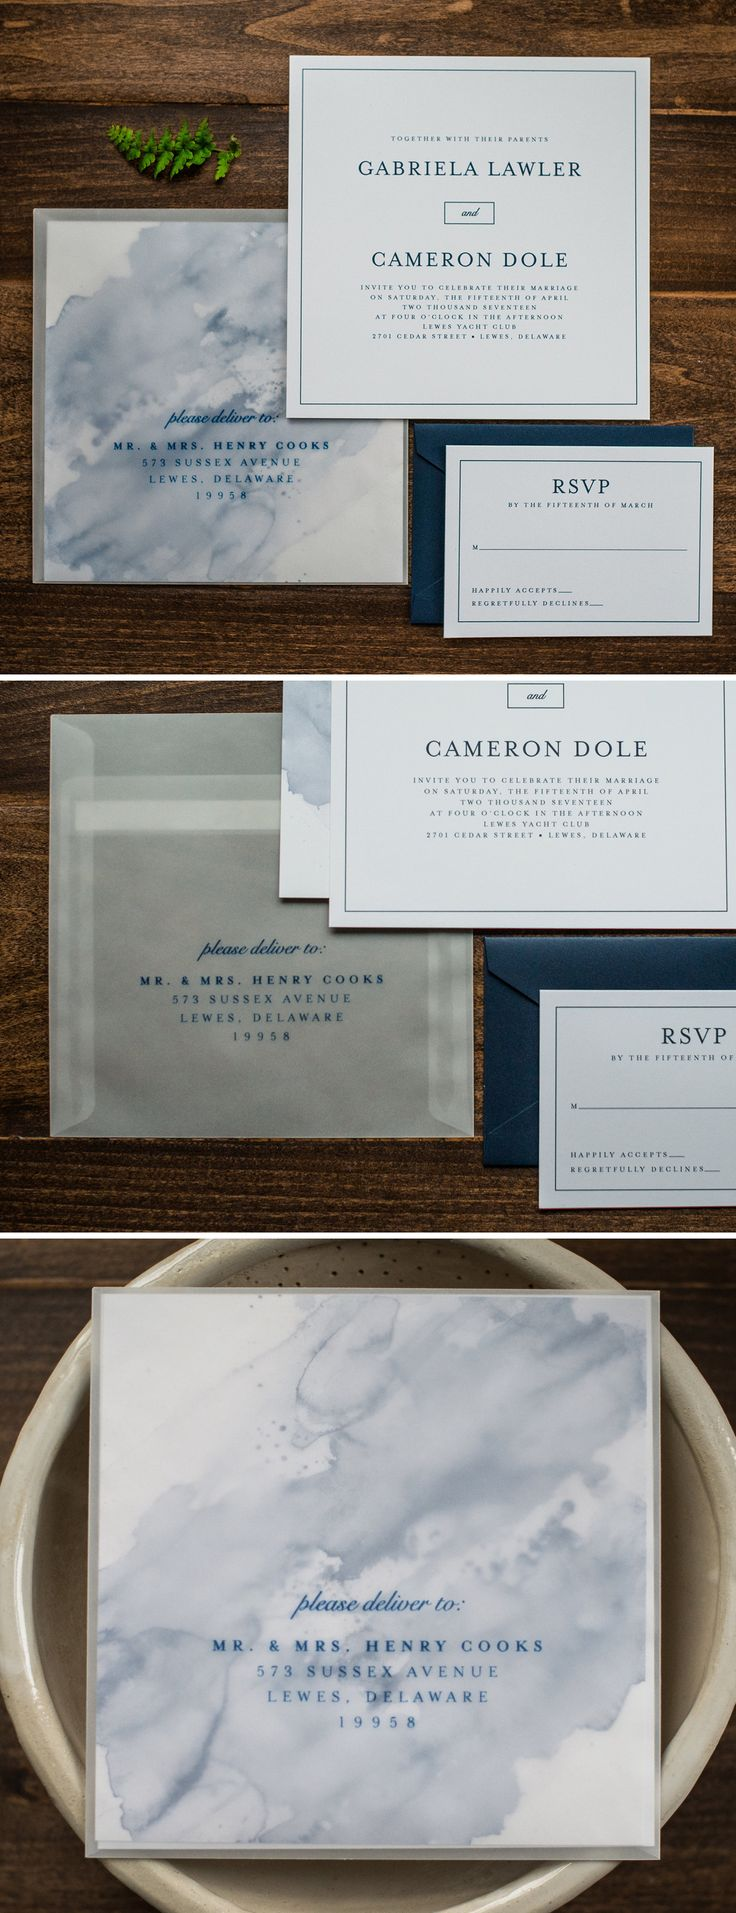 1394 Best Card Images On Pinterest Invitations Weddings And Airplanes